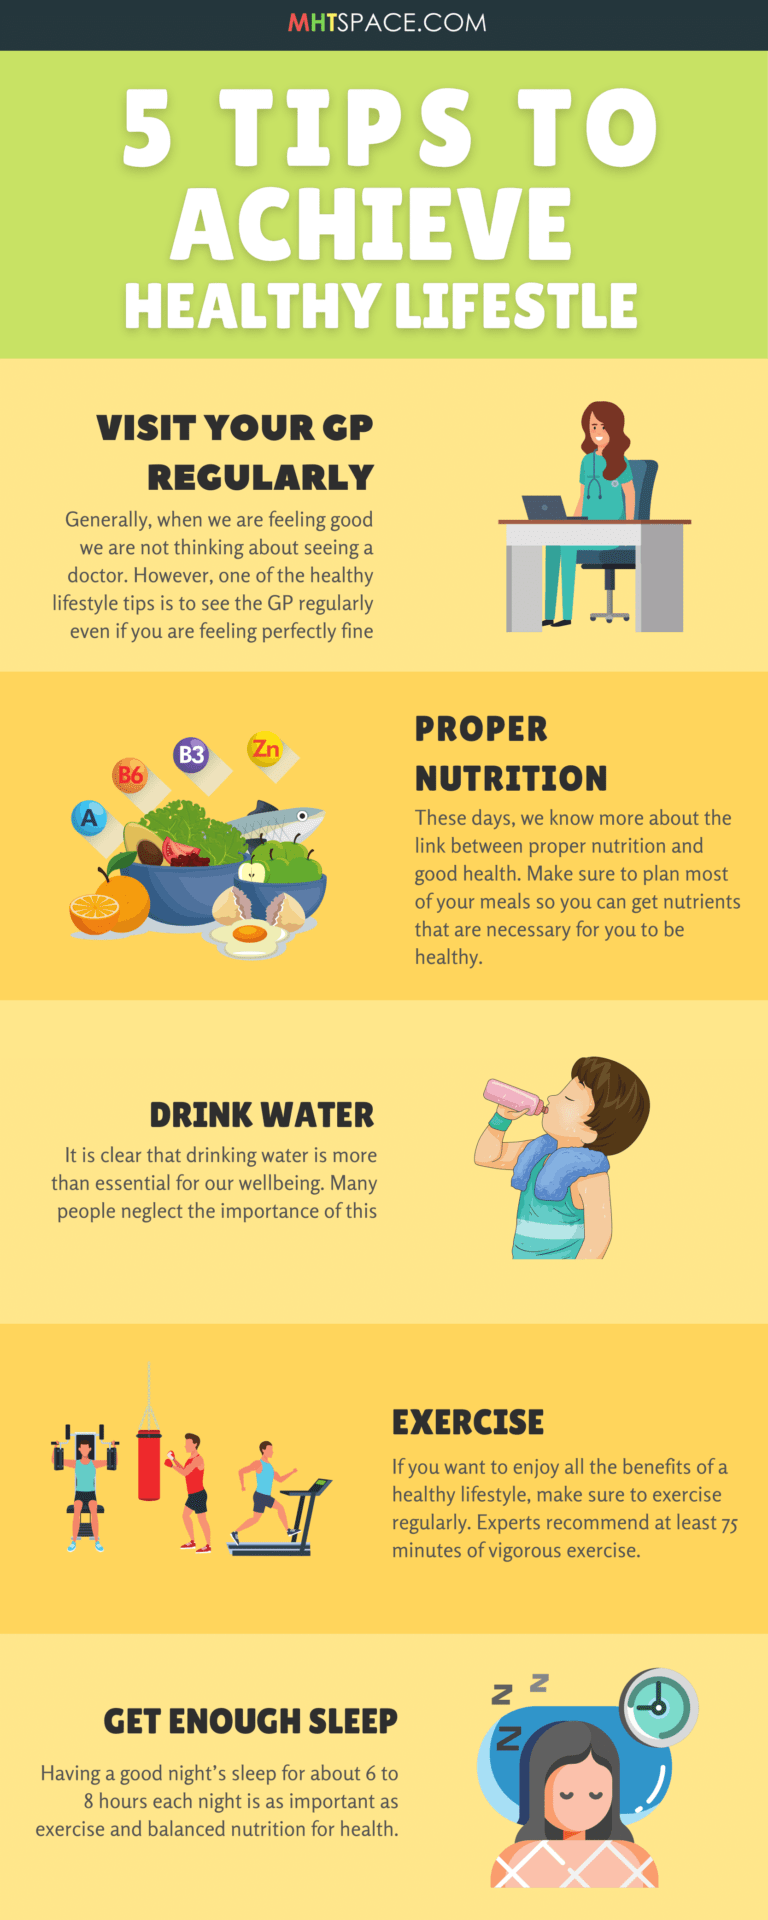 5 Tips To Achieve Healthy Lifestyle pin